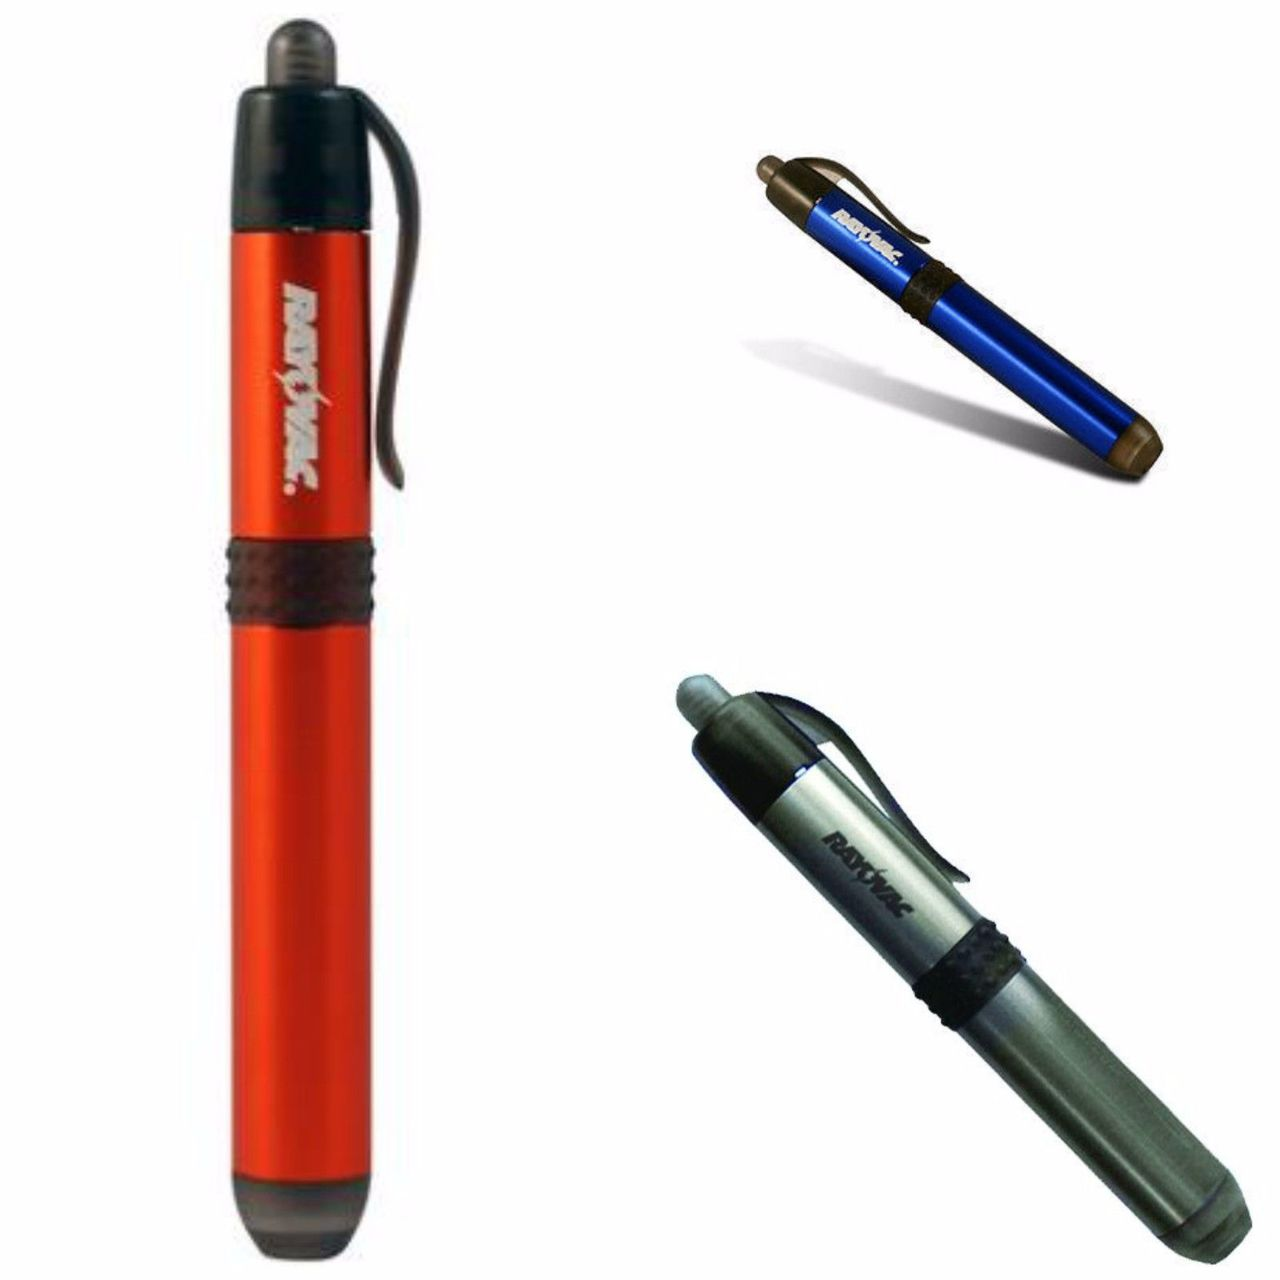 Rayovac Value Bright LED Pen Light - Pack Of 6 + FREE SHIPPING!